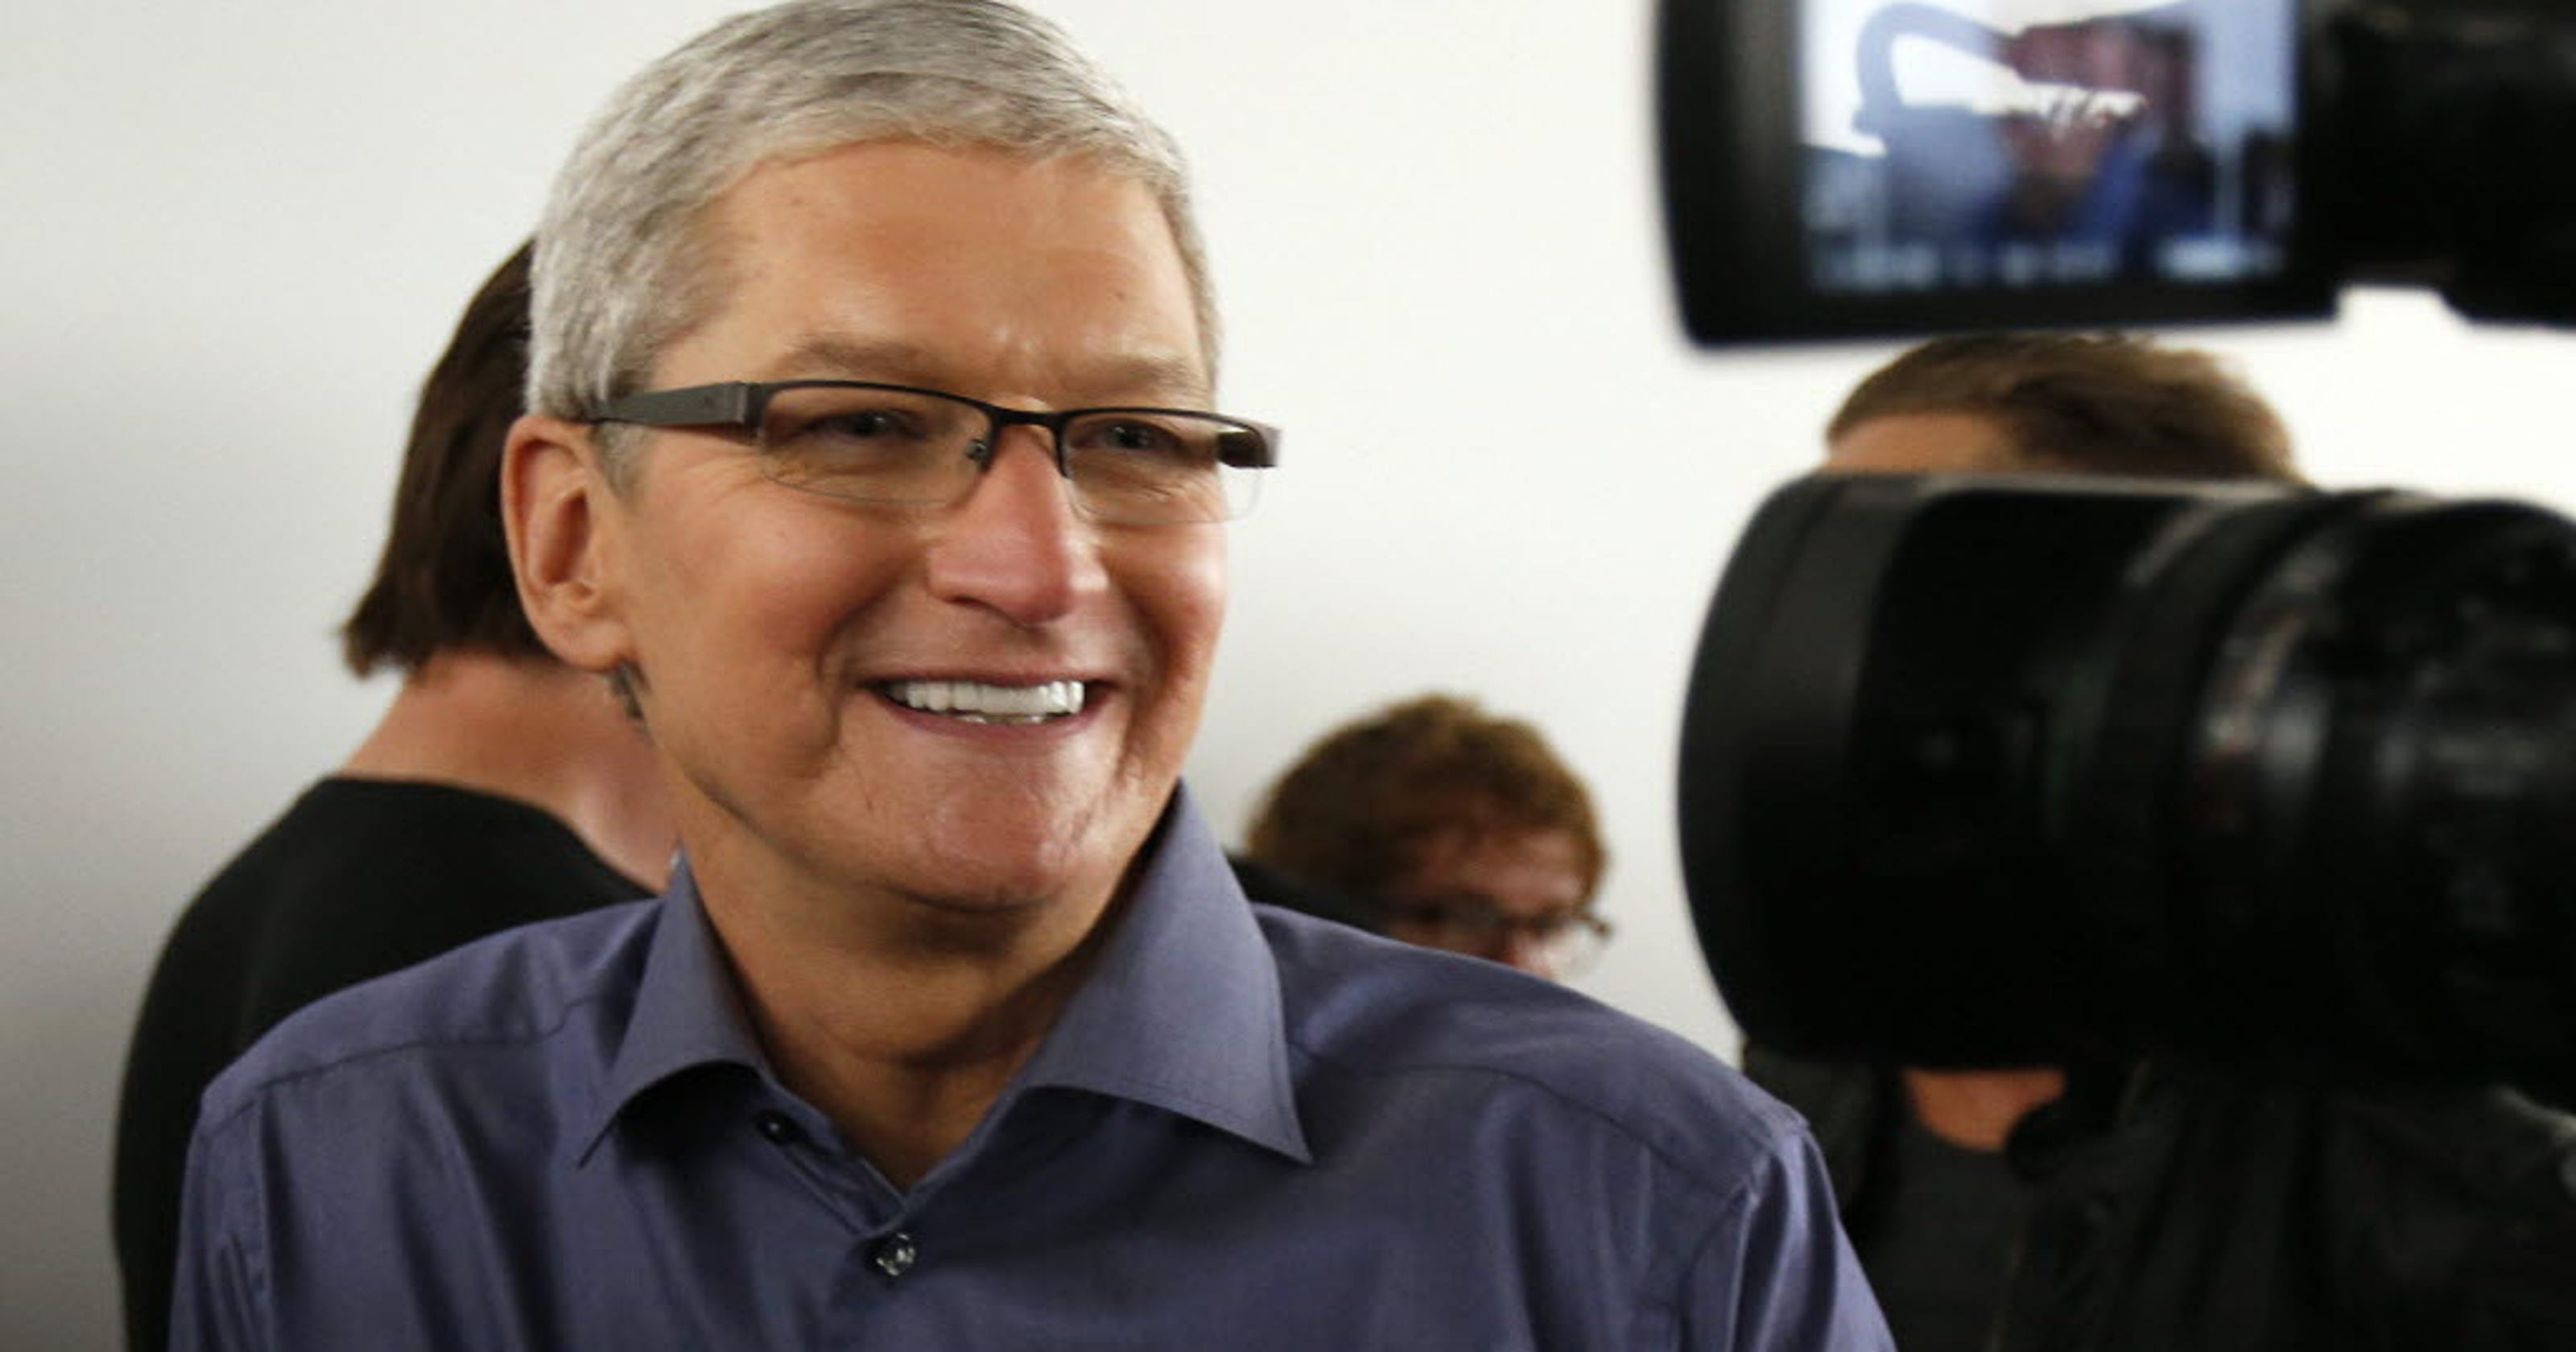 This Is Tim Cook's Apple: Clash Over IPhone Redefines